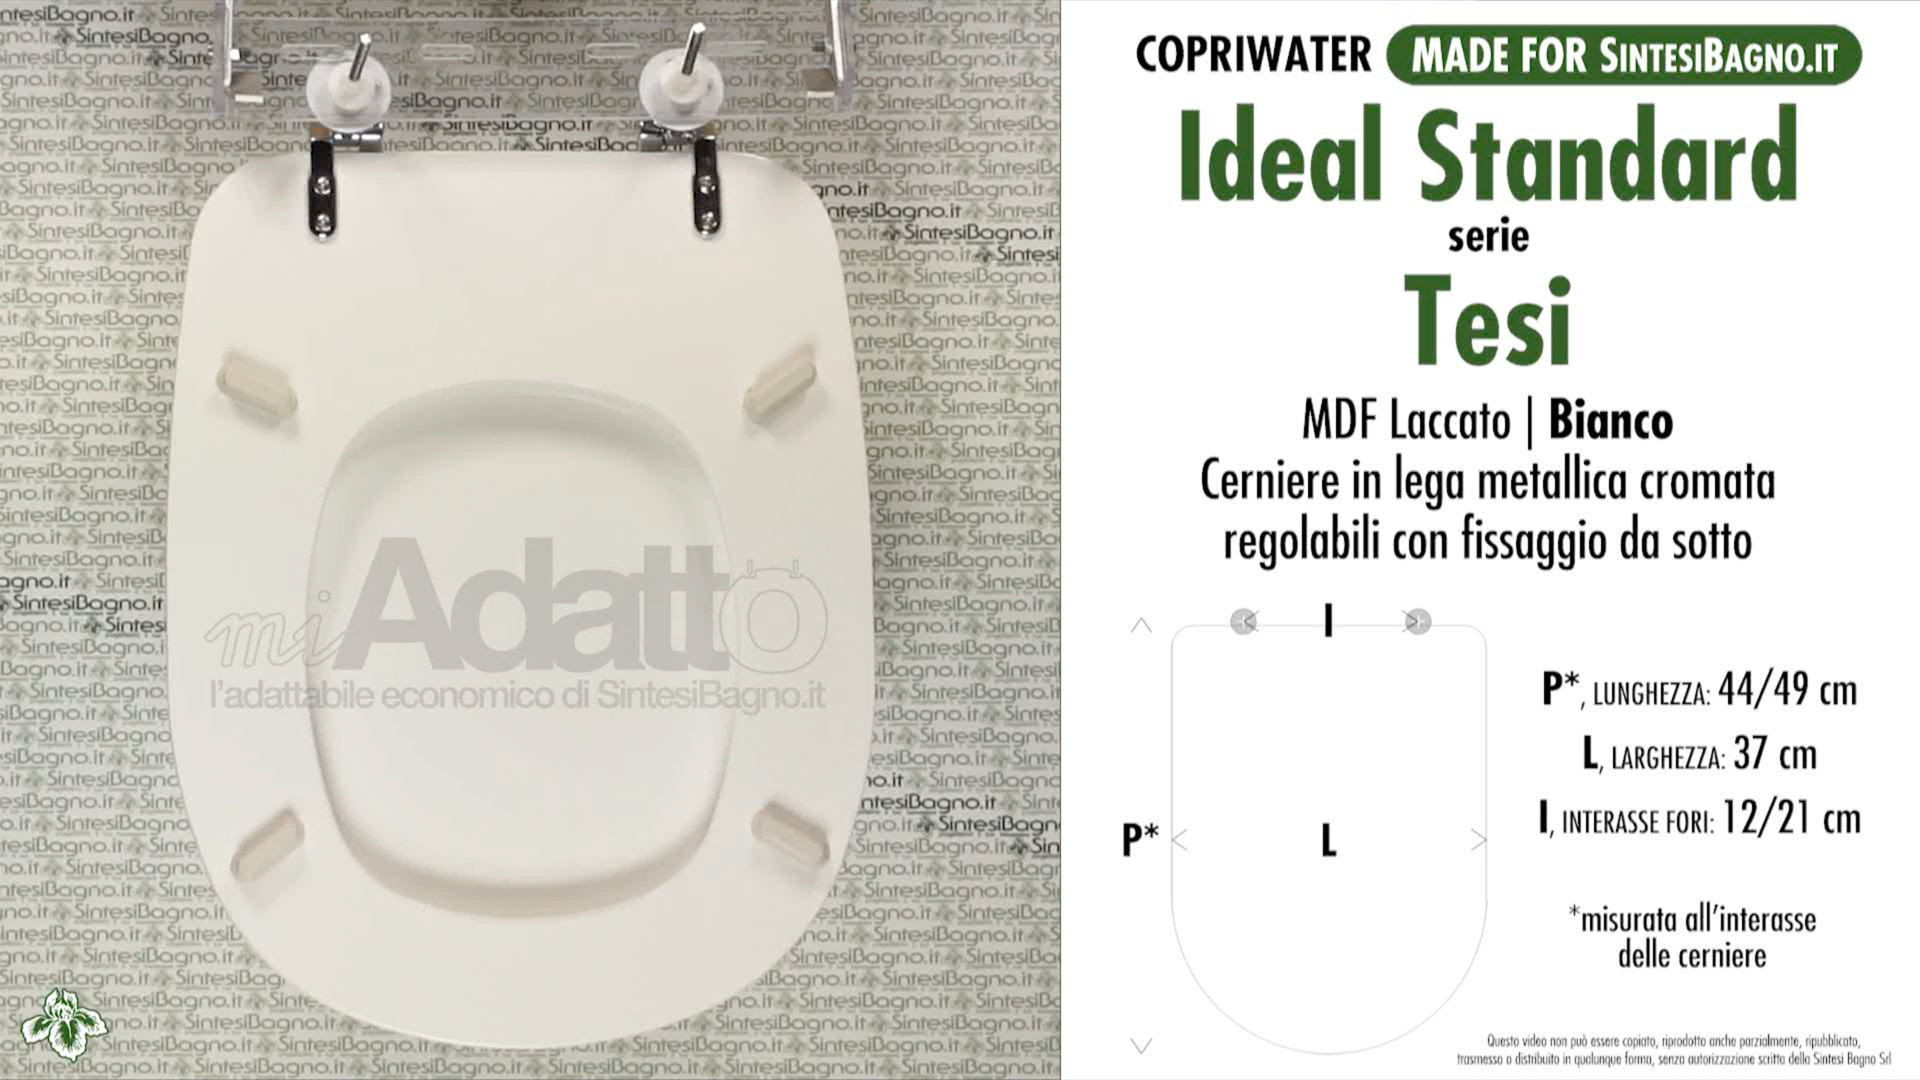 Copriwater per wc tesi ideal standard bianco tipo for Ideal standard tesi sospesi scheda tecnica